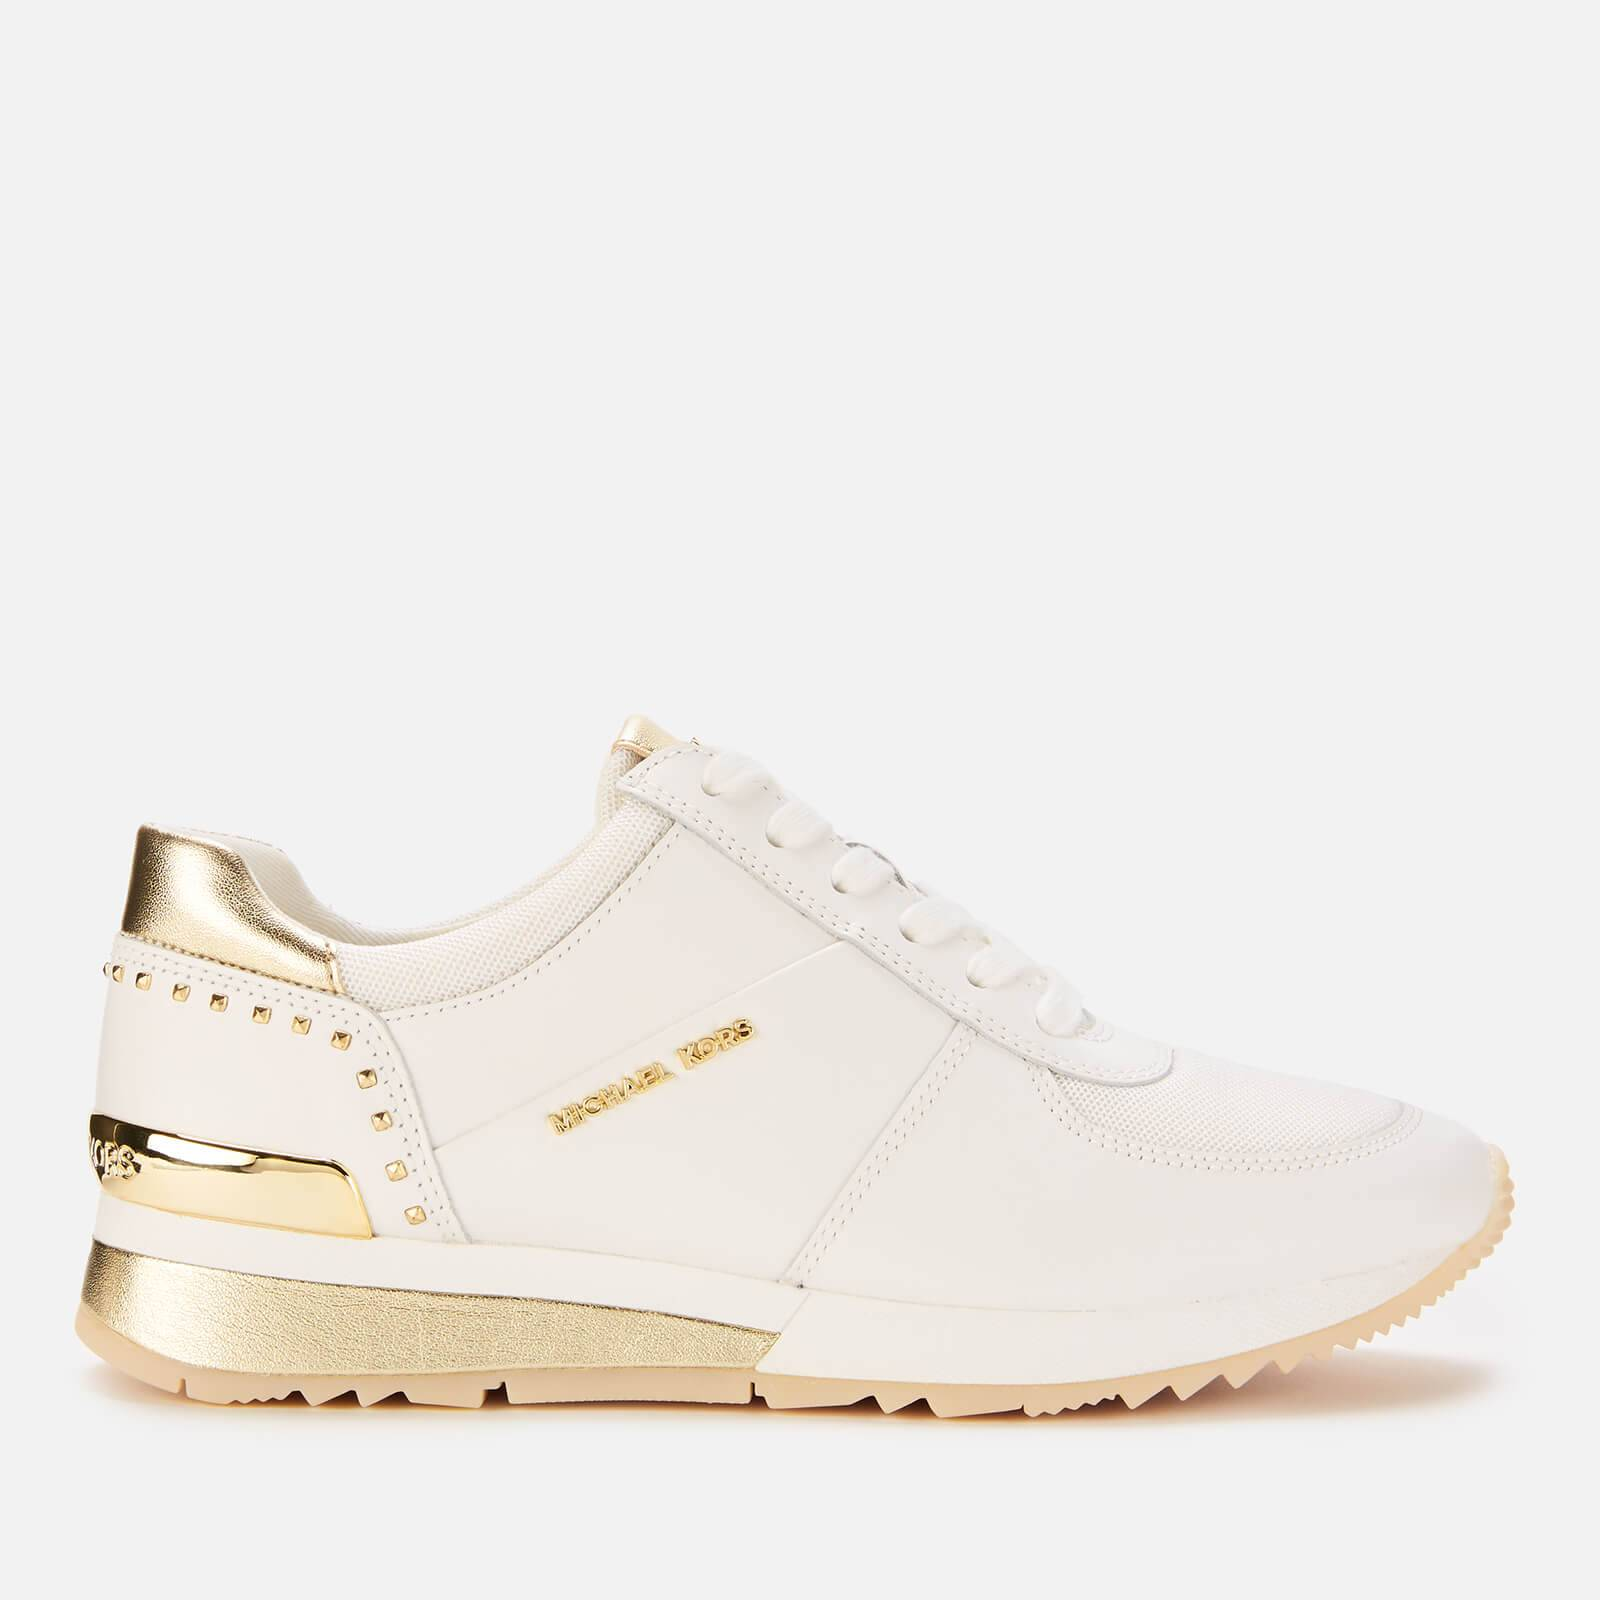 MICHAEL MICHAEL KORS Women's Allie Leather Wrap Runner Style Trainers - Optic/Pale Gold - UK 4/US 7 - Beige